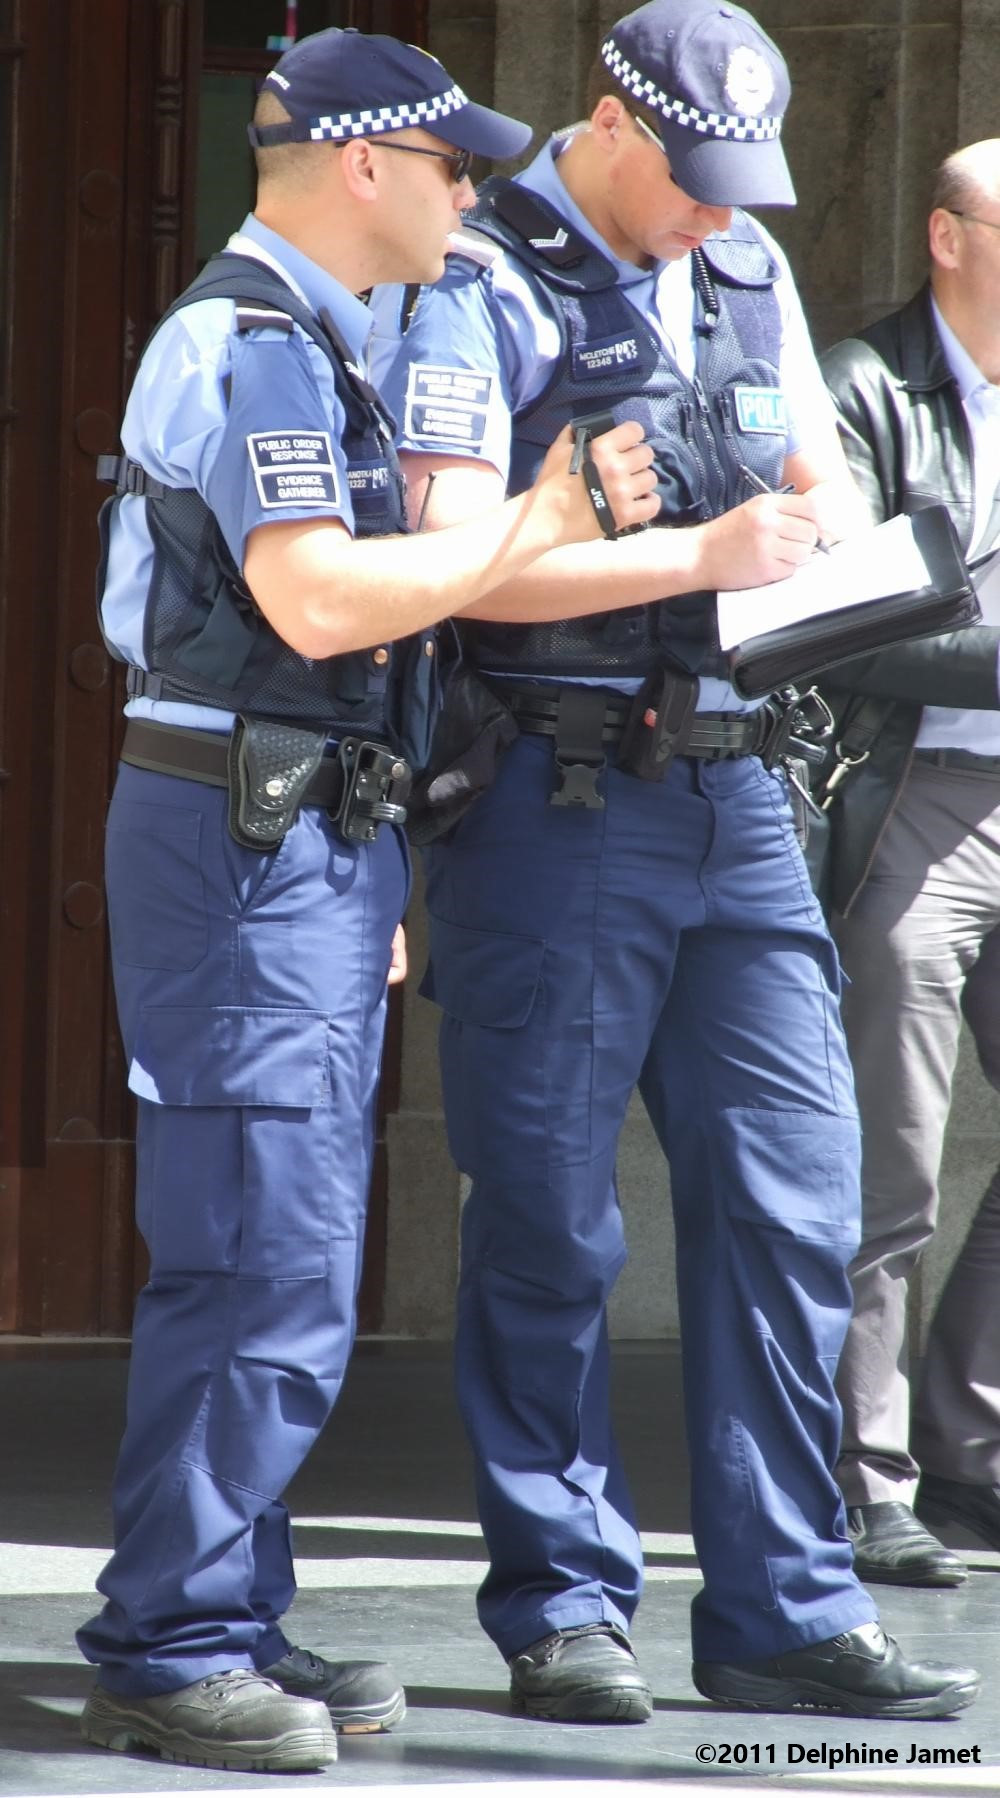 Western Australia police officers gather intelligence and video evidence of protestors at the 2011 CHOGM protest event in Forrest Chase